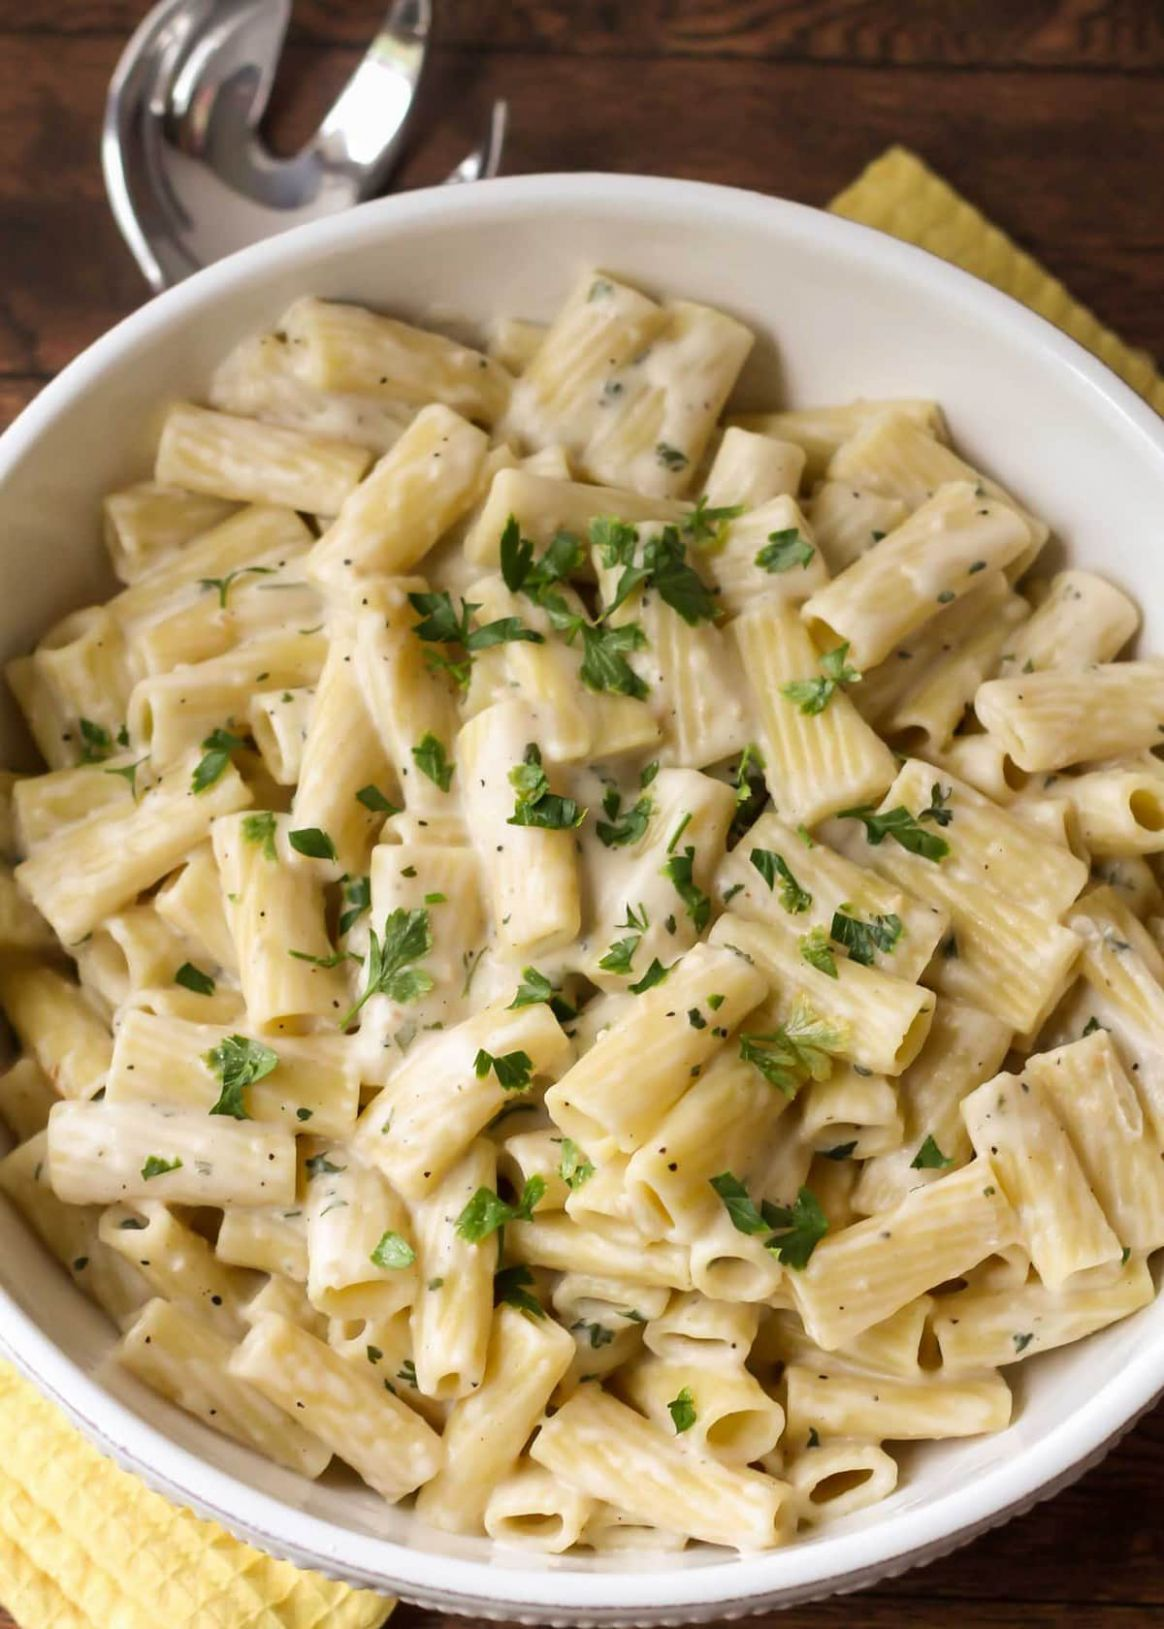 White Sauce Pasta Recipe - Recipes Using Pasta Sauce